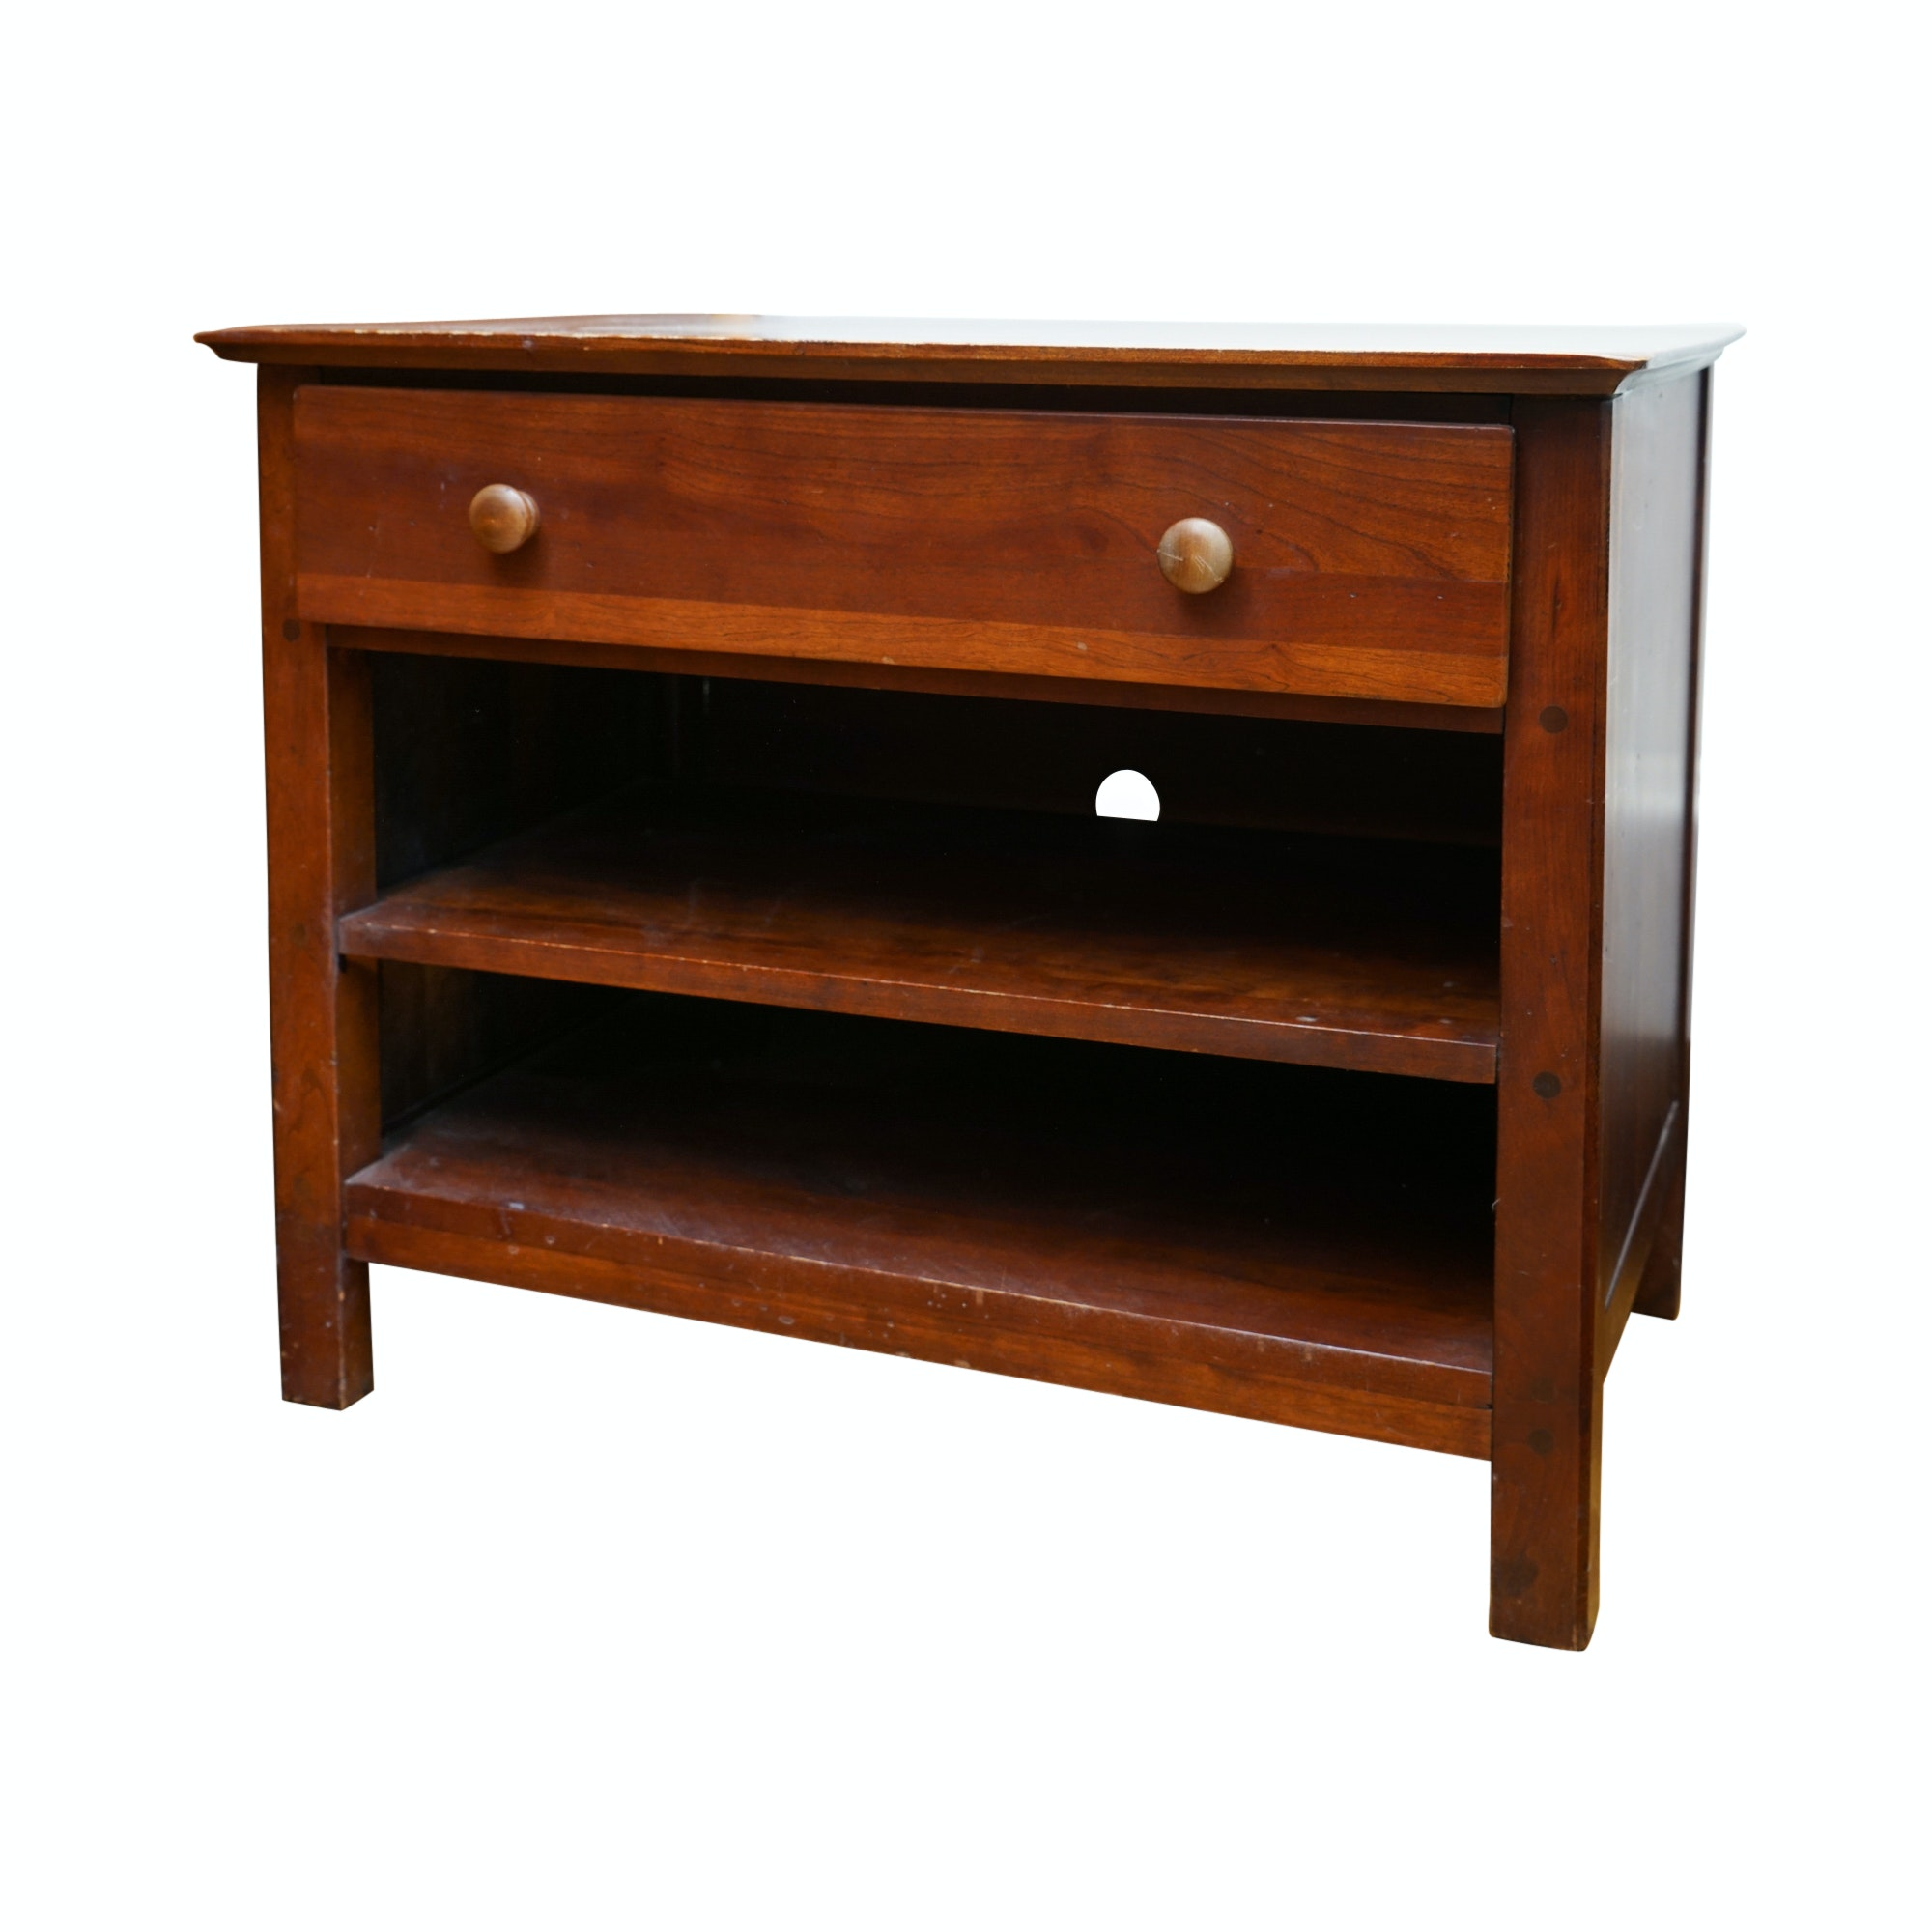 Contemporary One-Drawer Side Table with Shelving